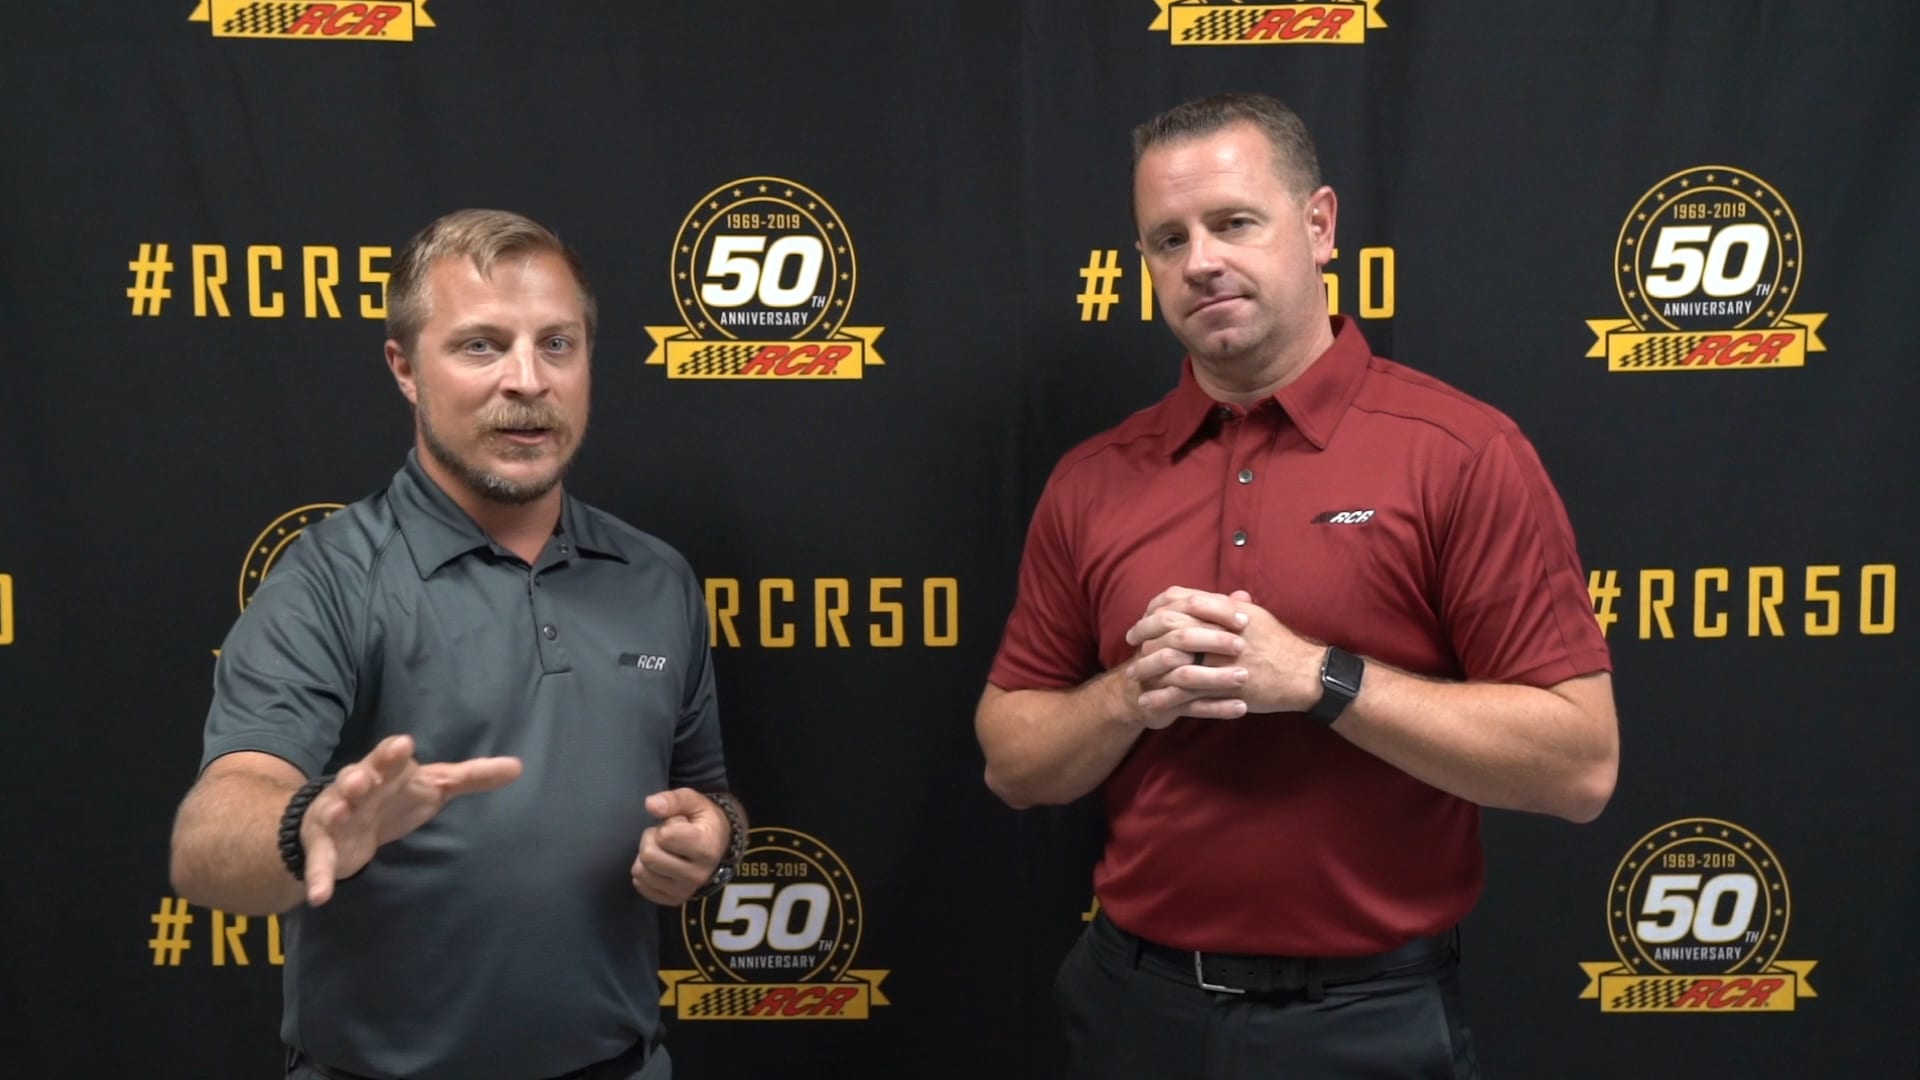 Museum Monday: Gearing Up for the RCR 50th Fan Segment